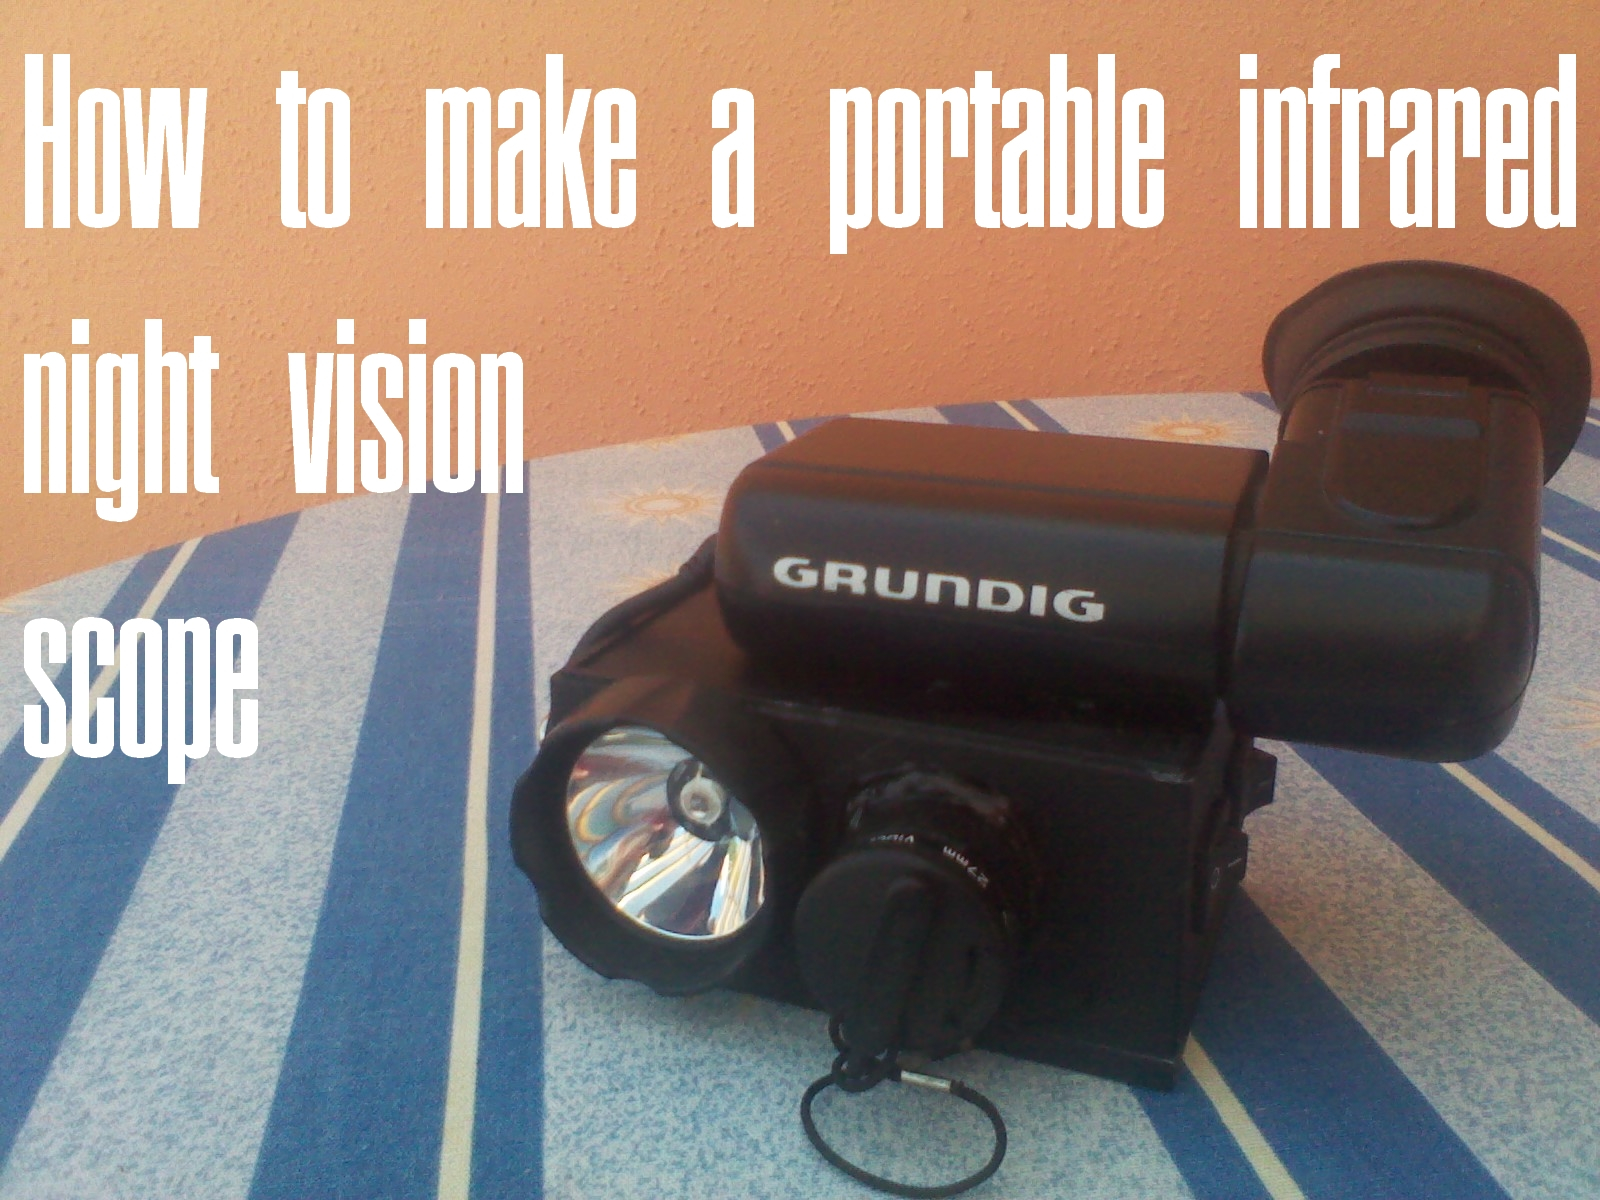 How to make a portable infrared night vision scope